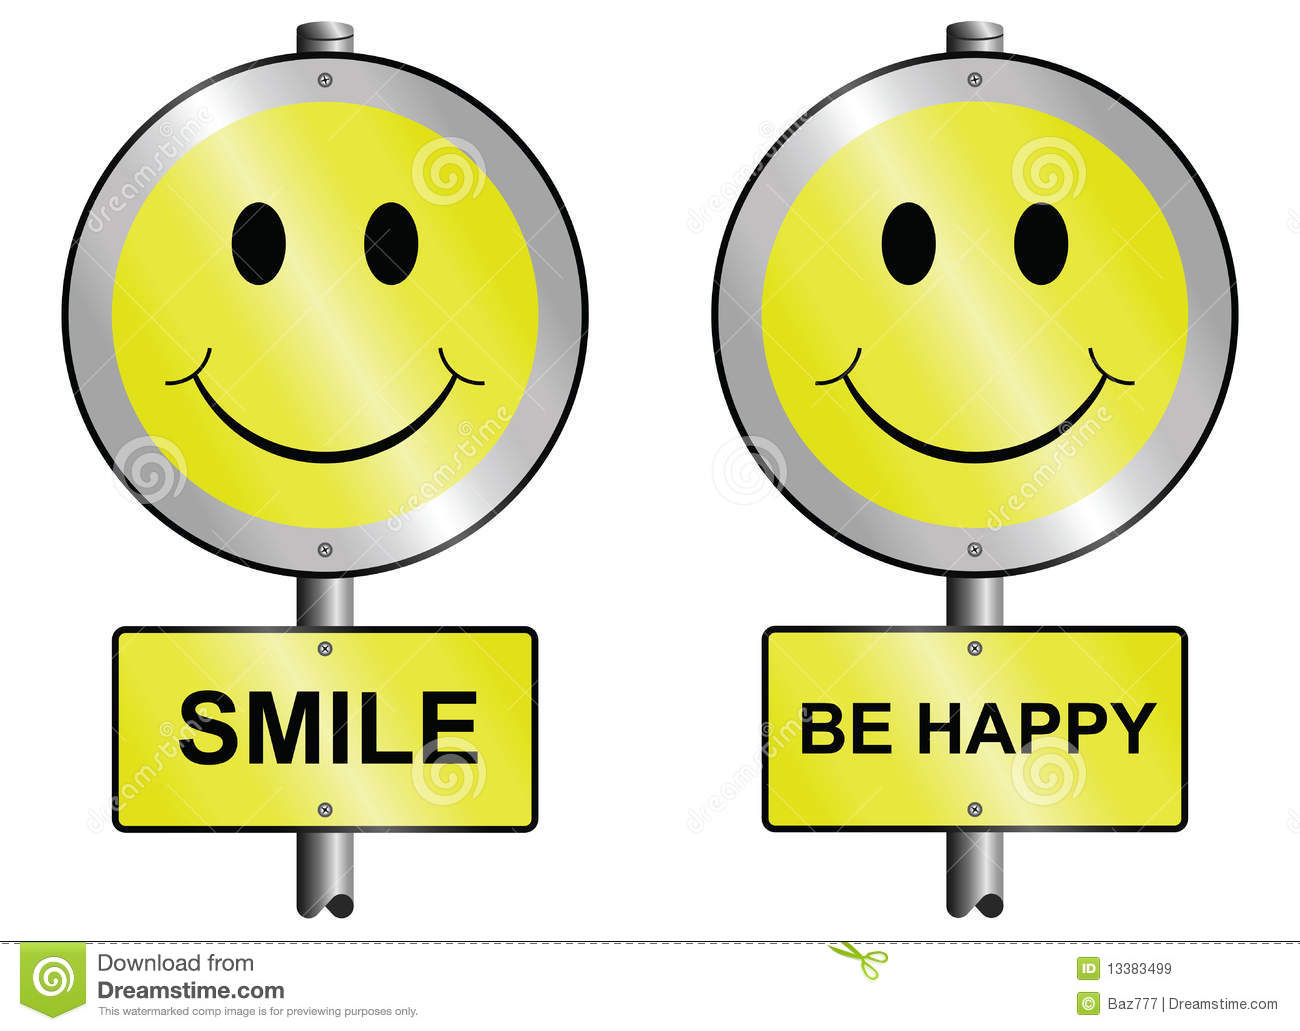 Smile And Be Happy Royalty Free Stock Images - Image: 13383499